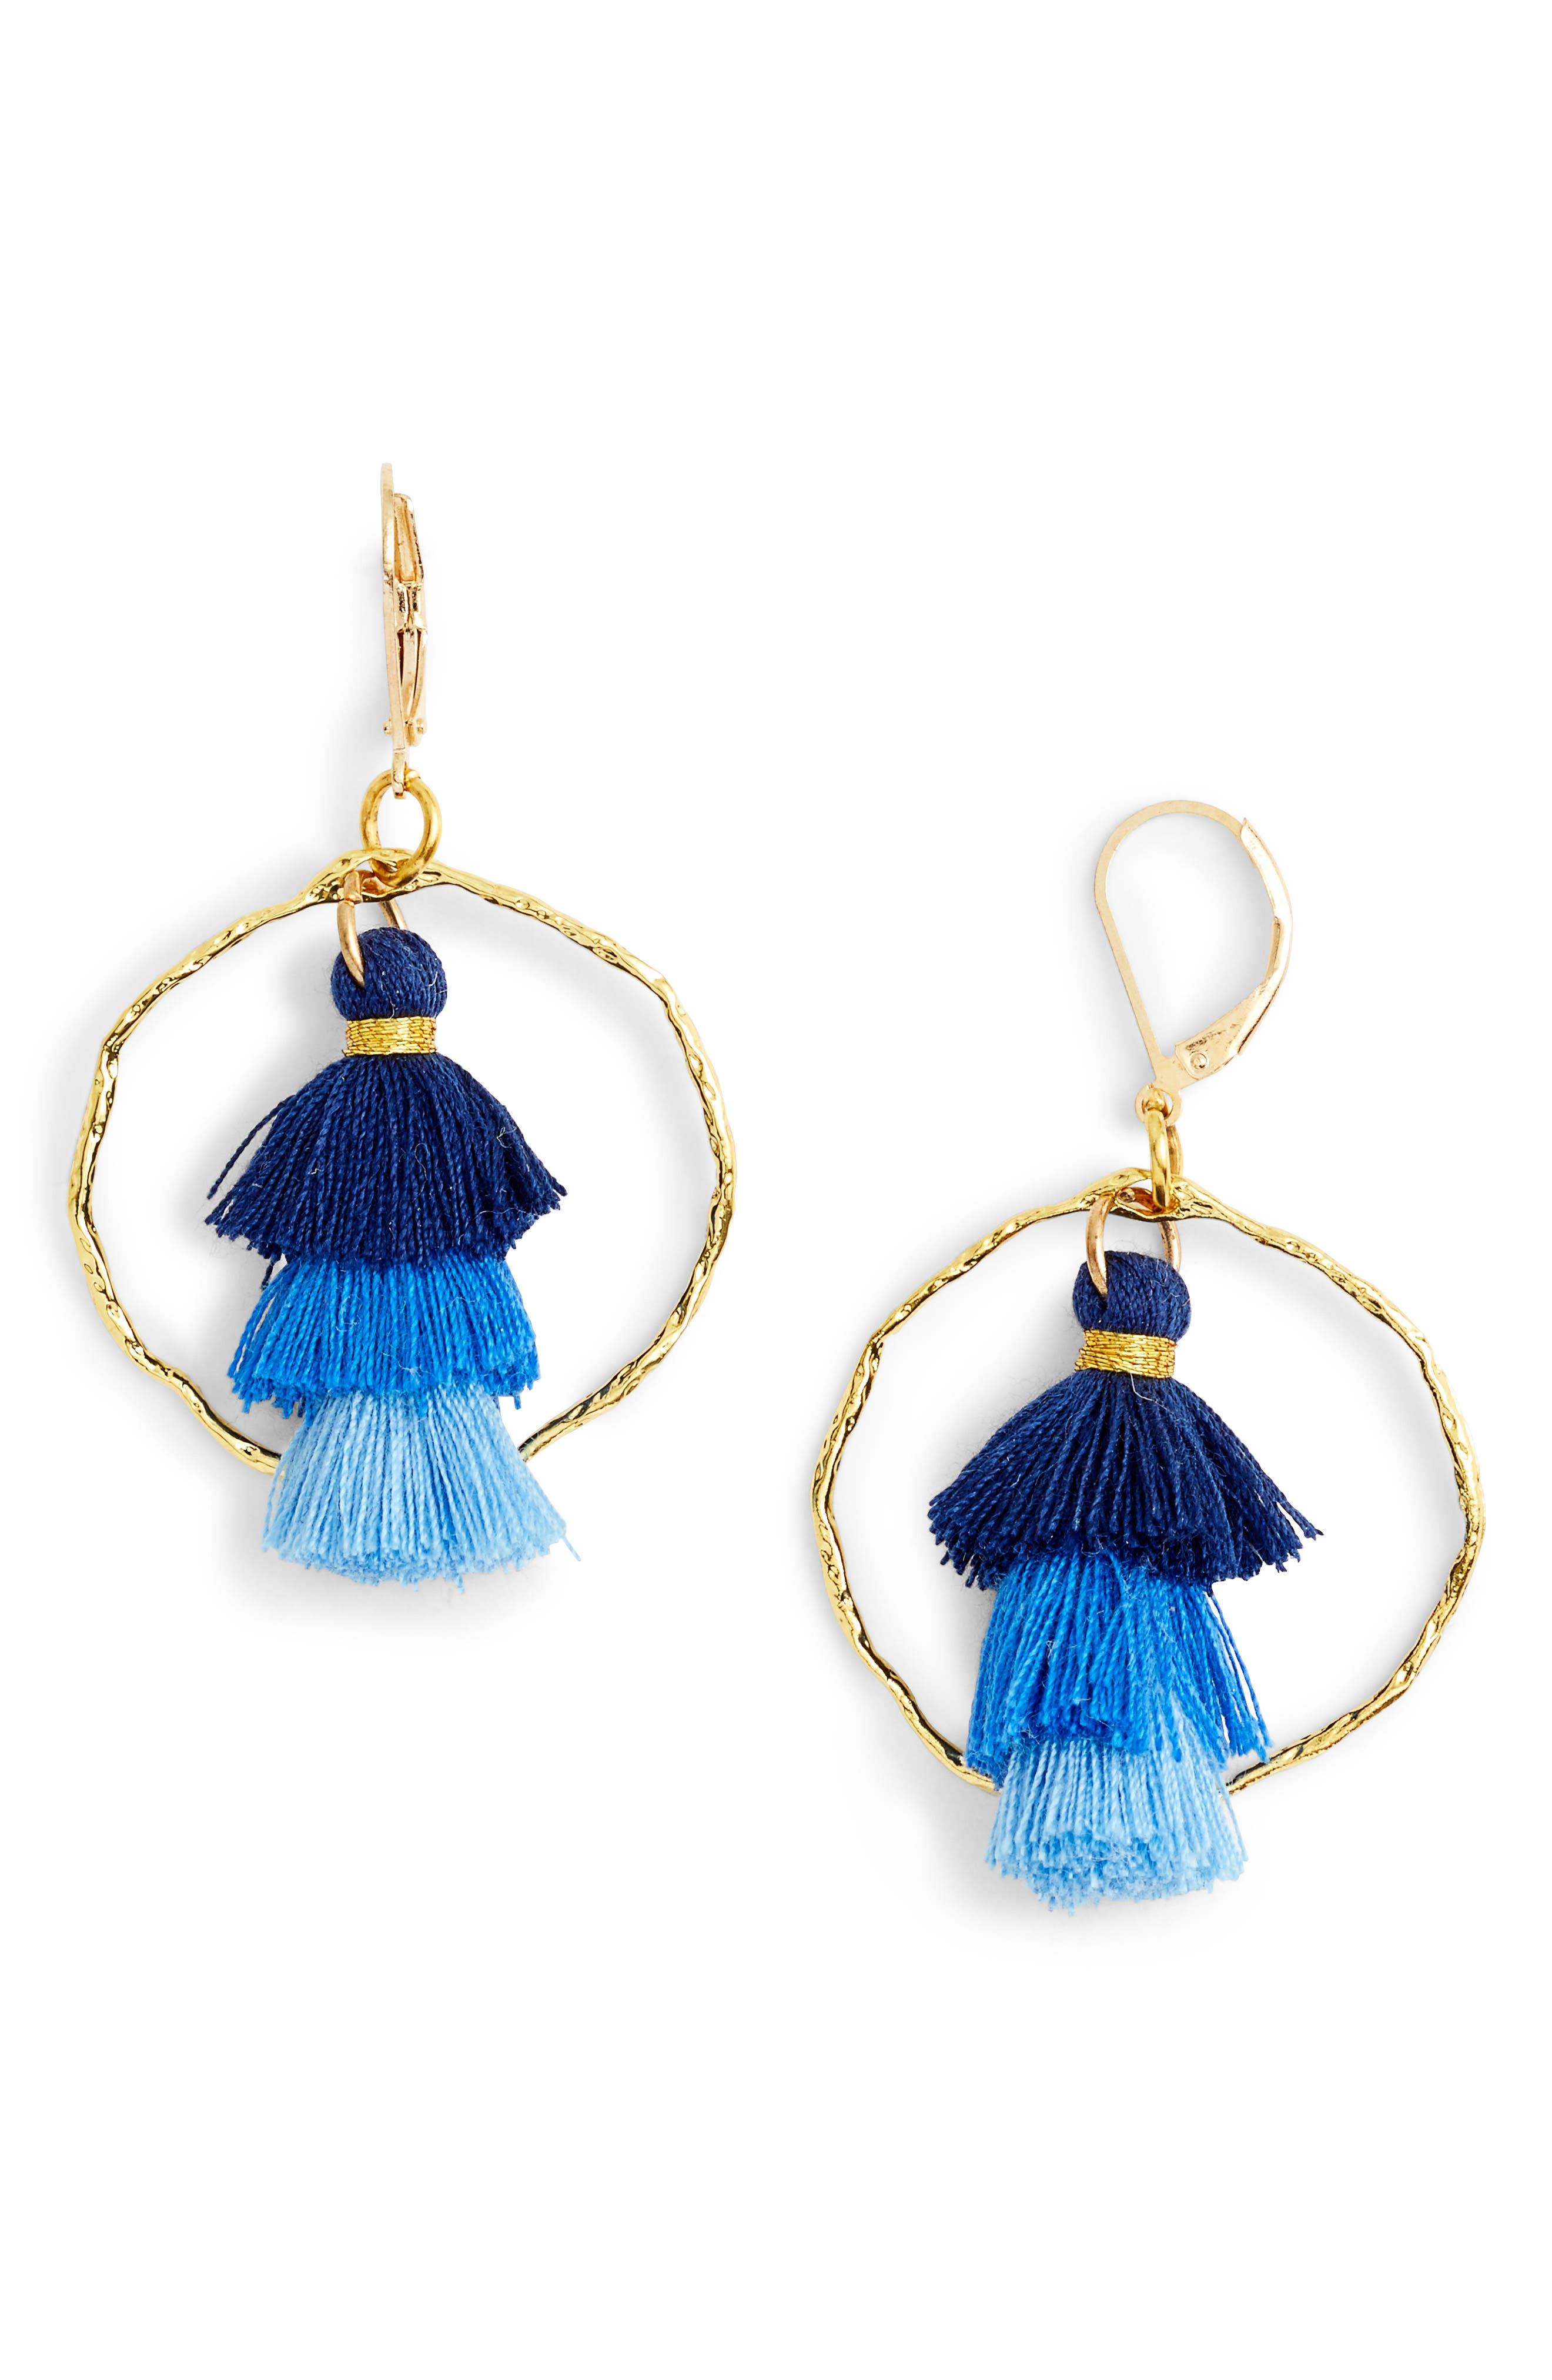 Ibiza Tassel & Hammered Hoop Earrings,                         Main,                         color, Blue/ Gold